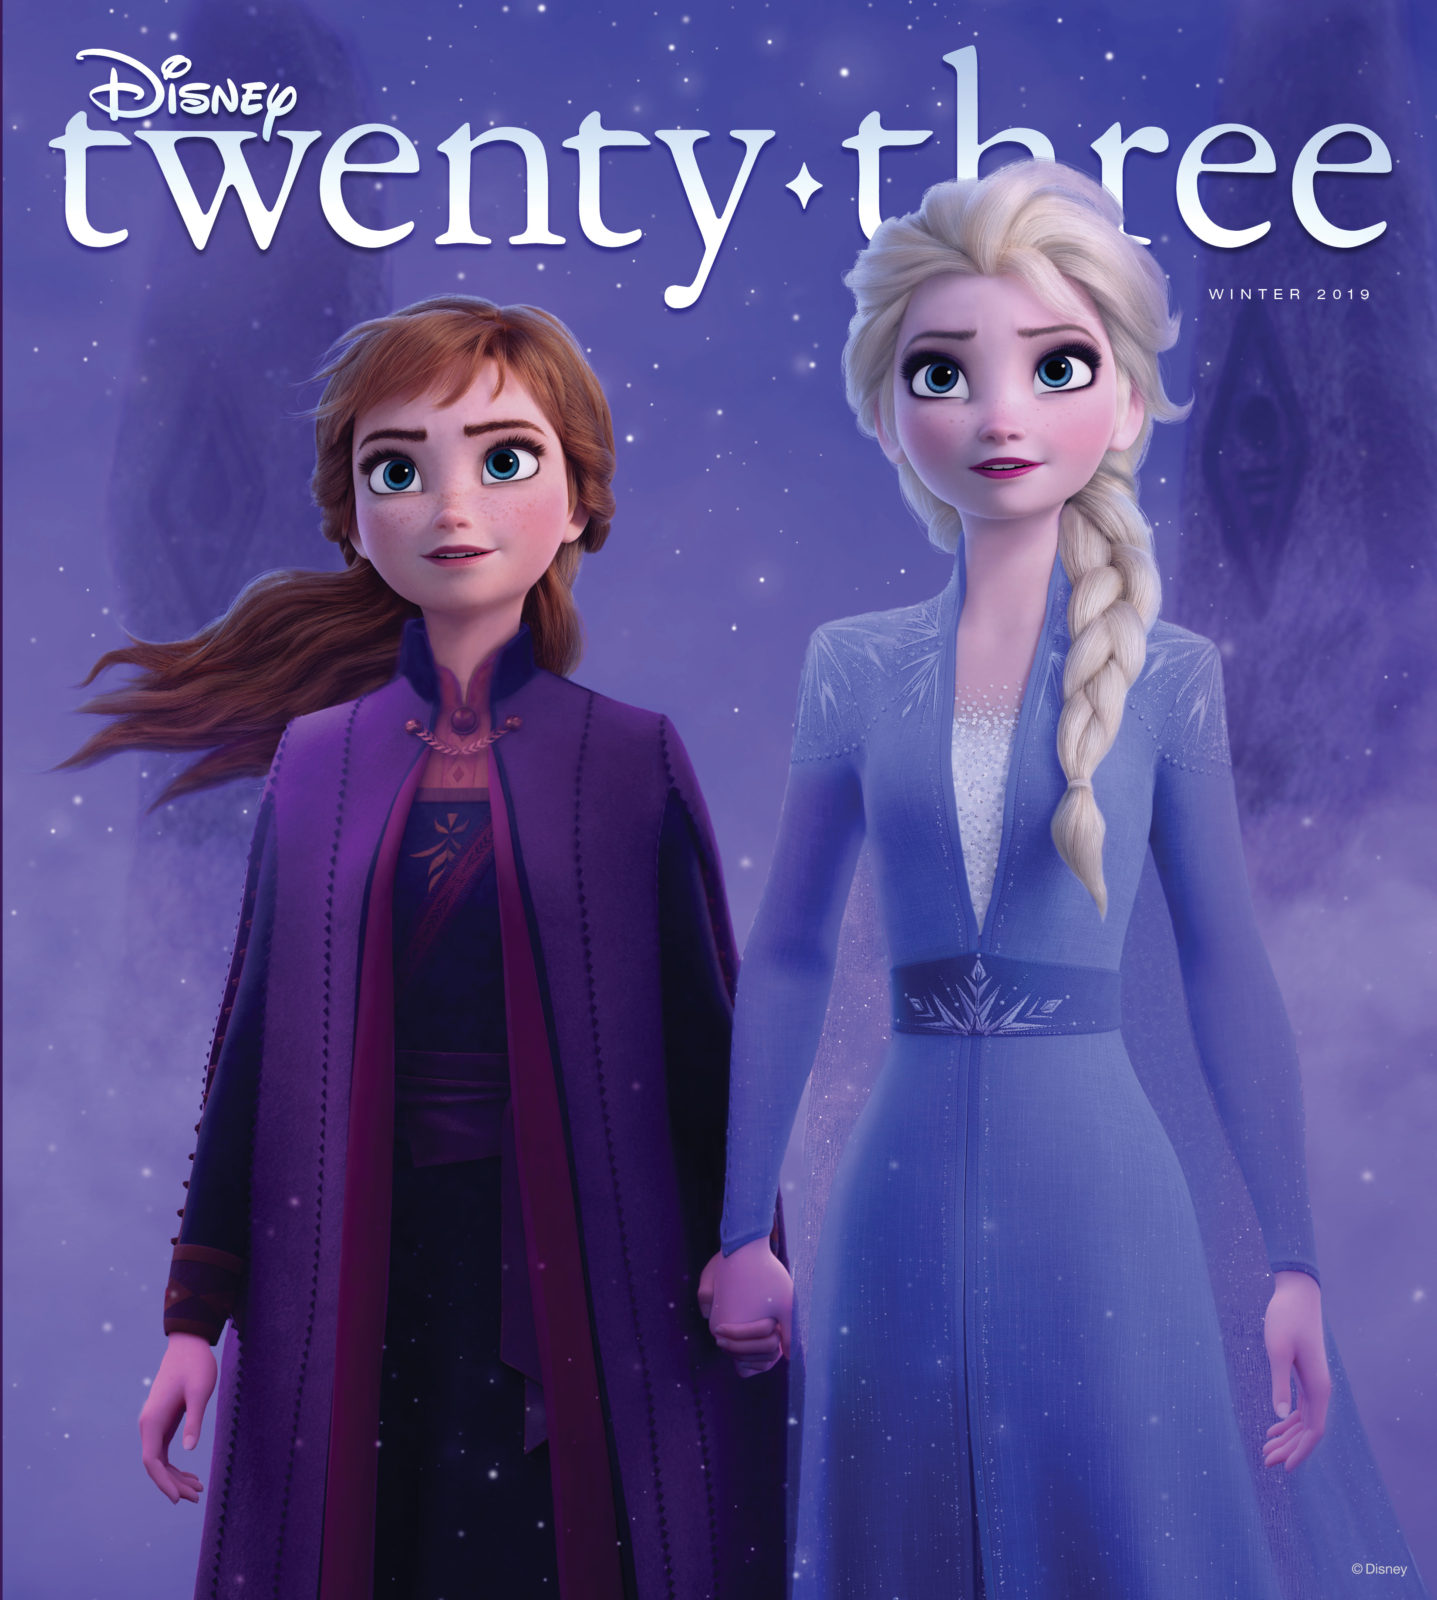 2019 Disney Twenty Three Winter - Frozen II D23